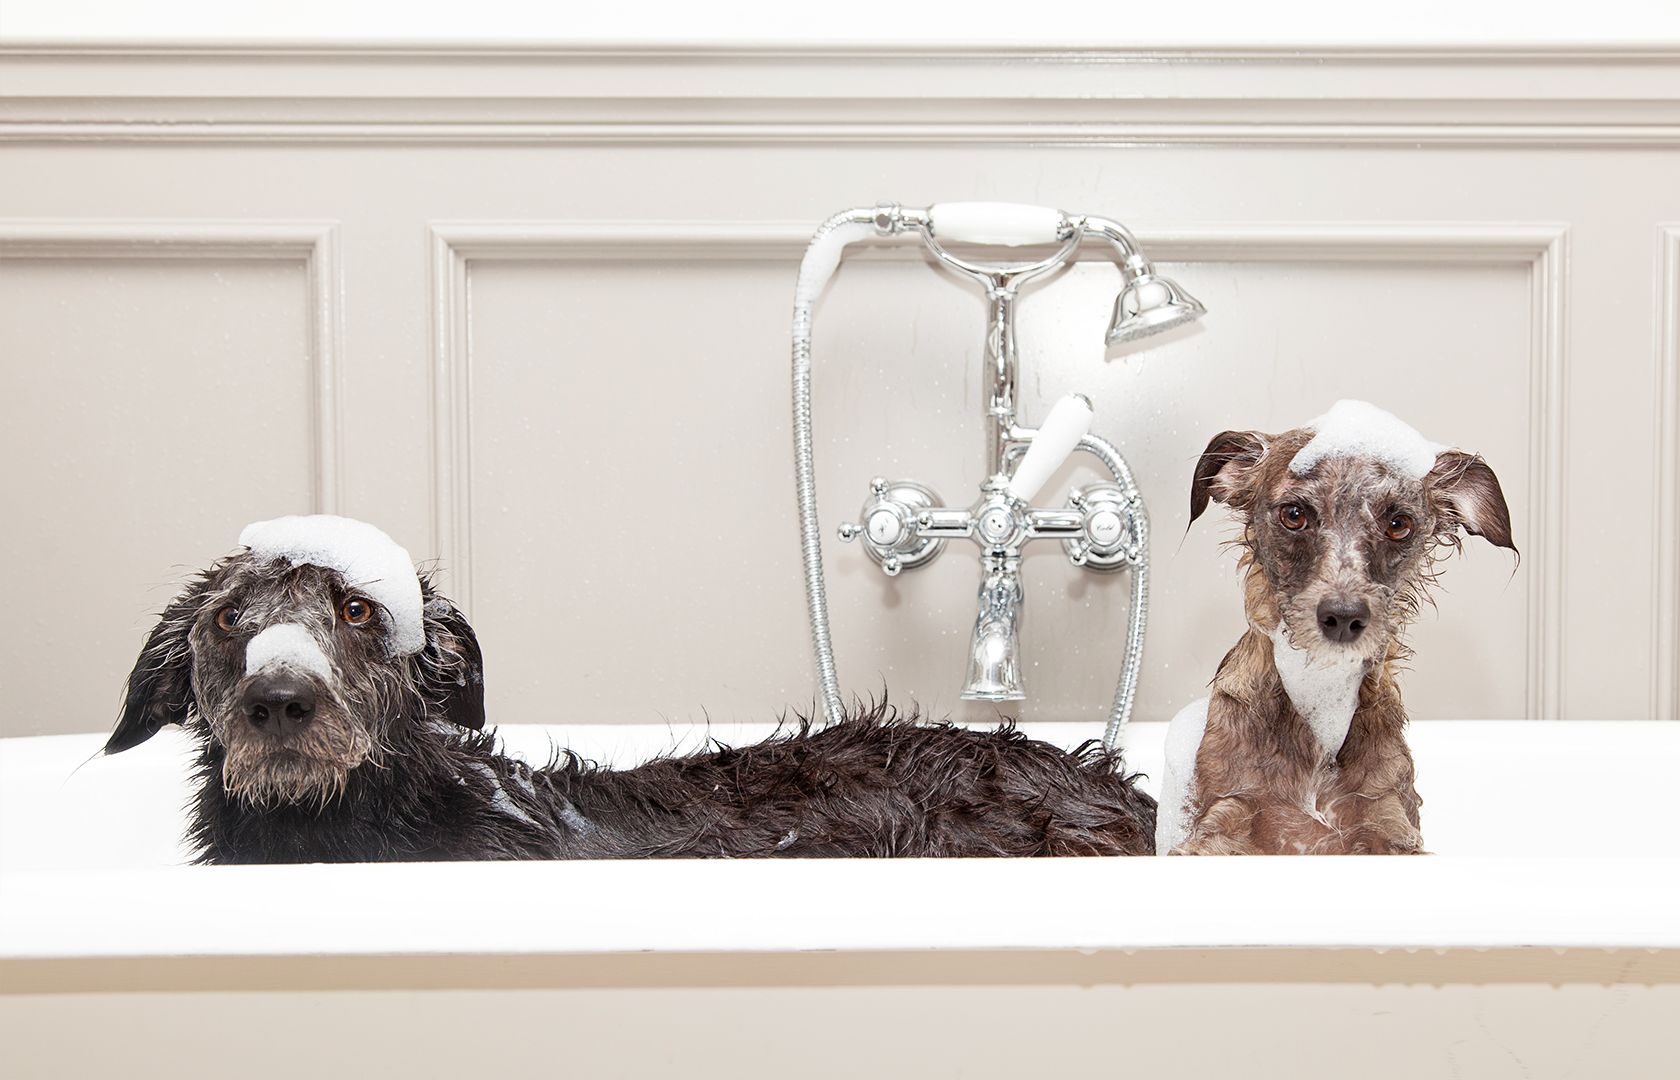 The Dapper Dog: How to Groom Your Pooch